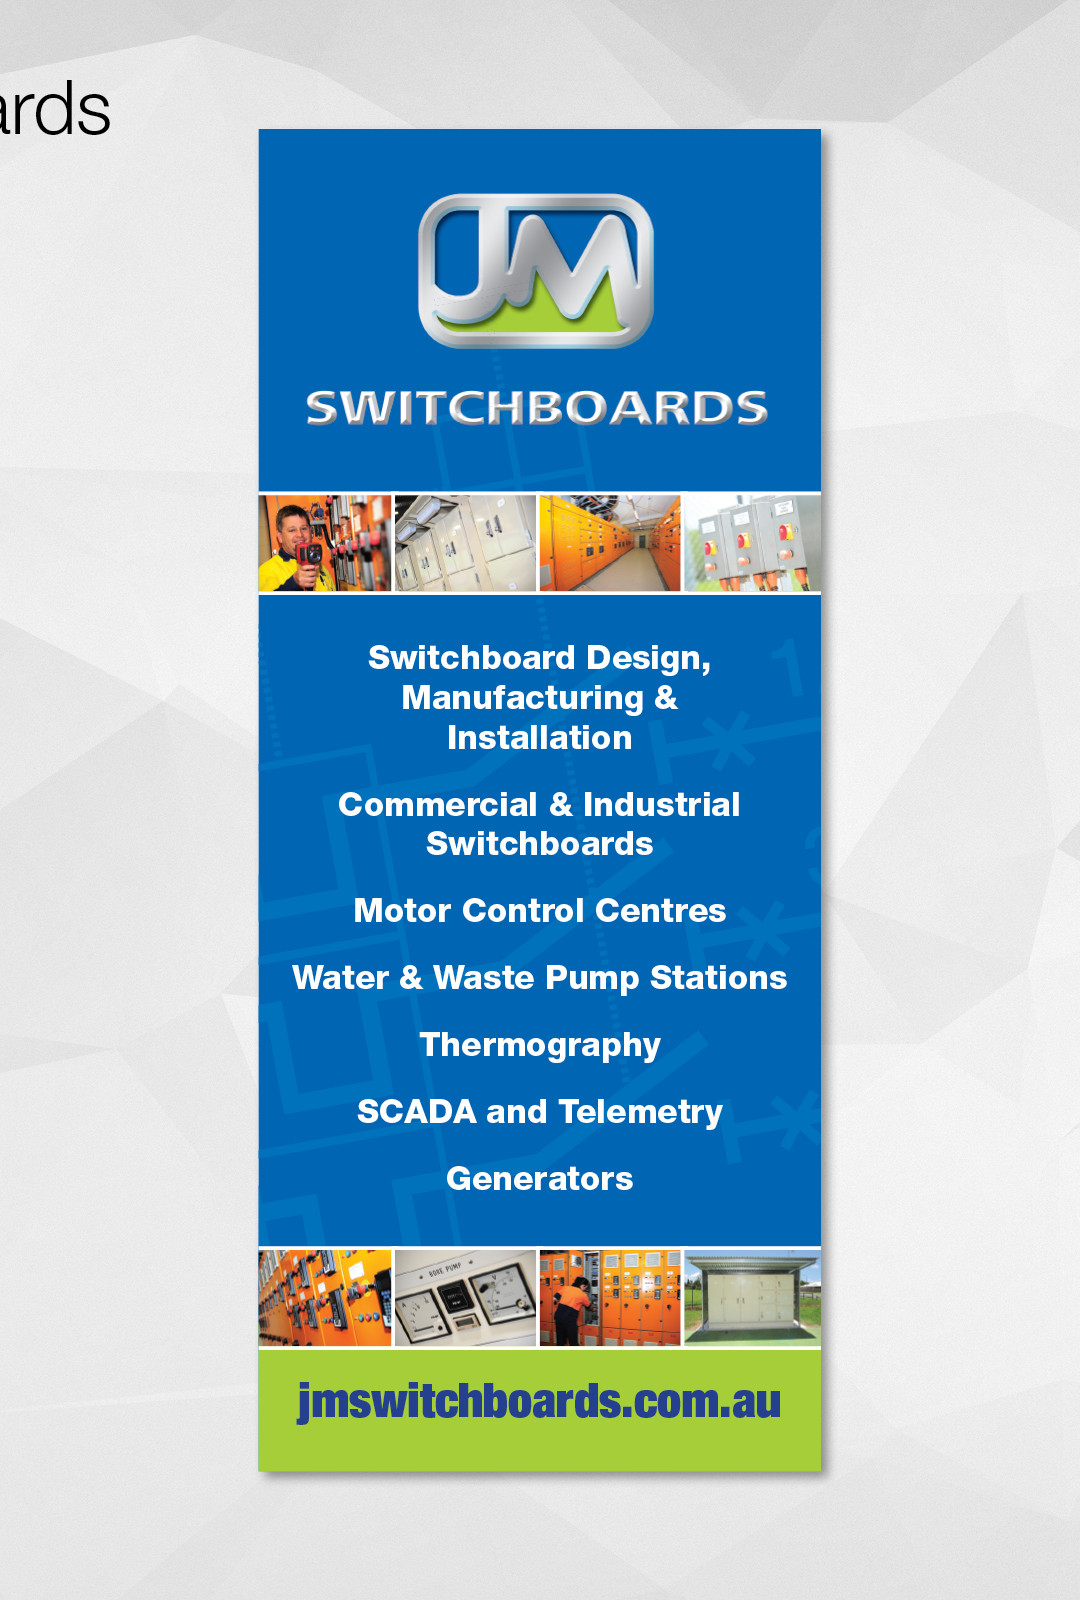 JM Switchboards